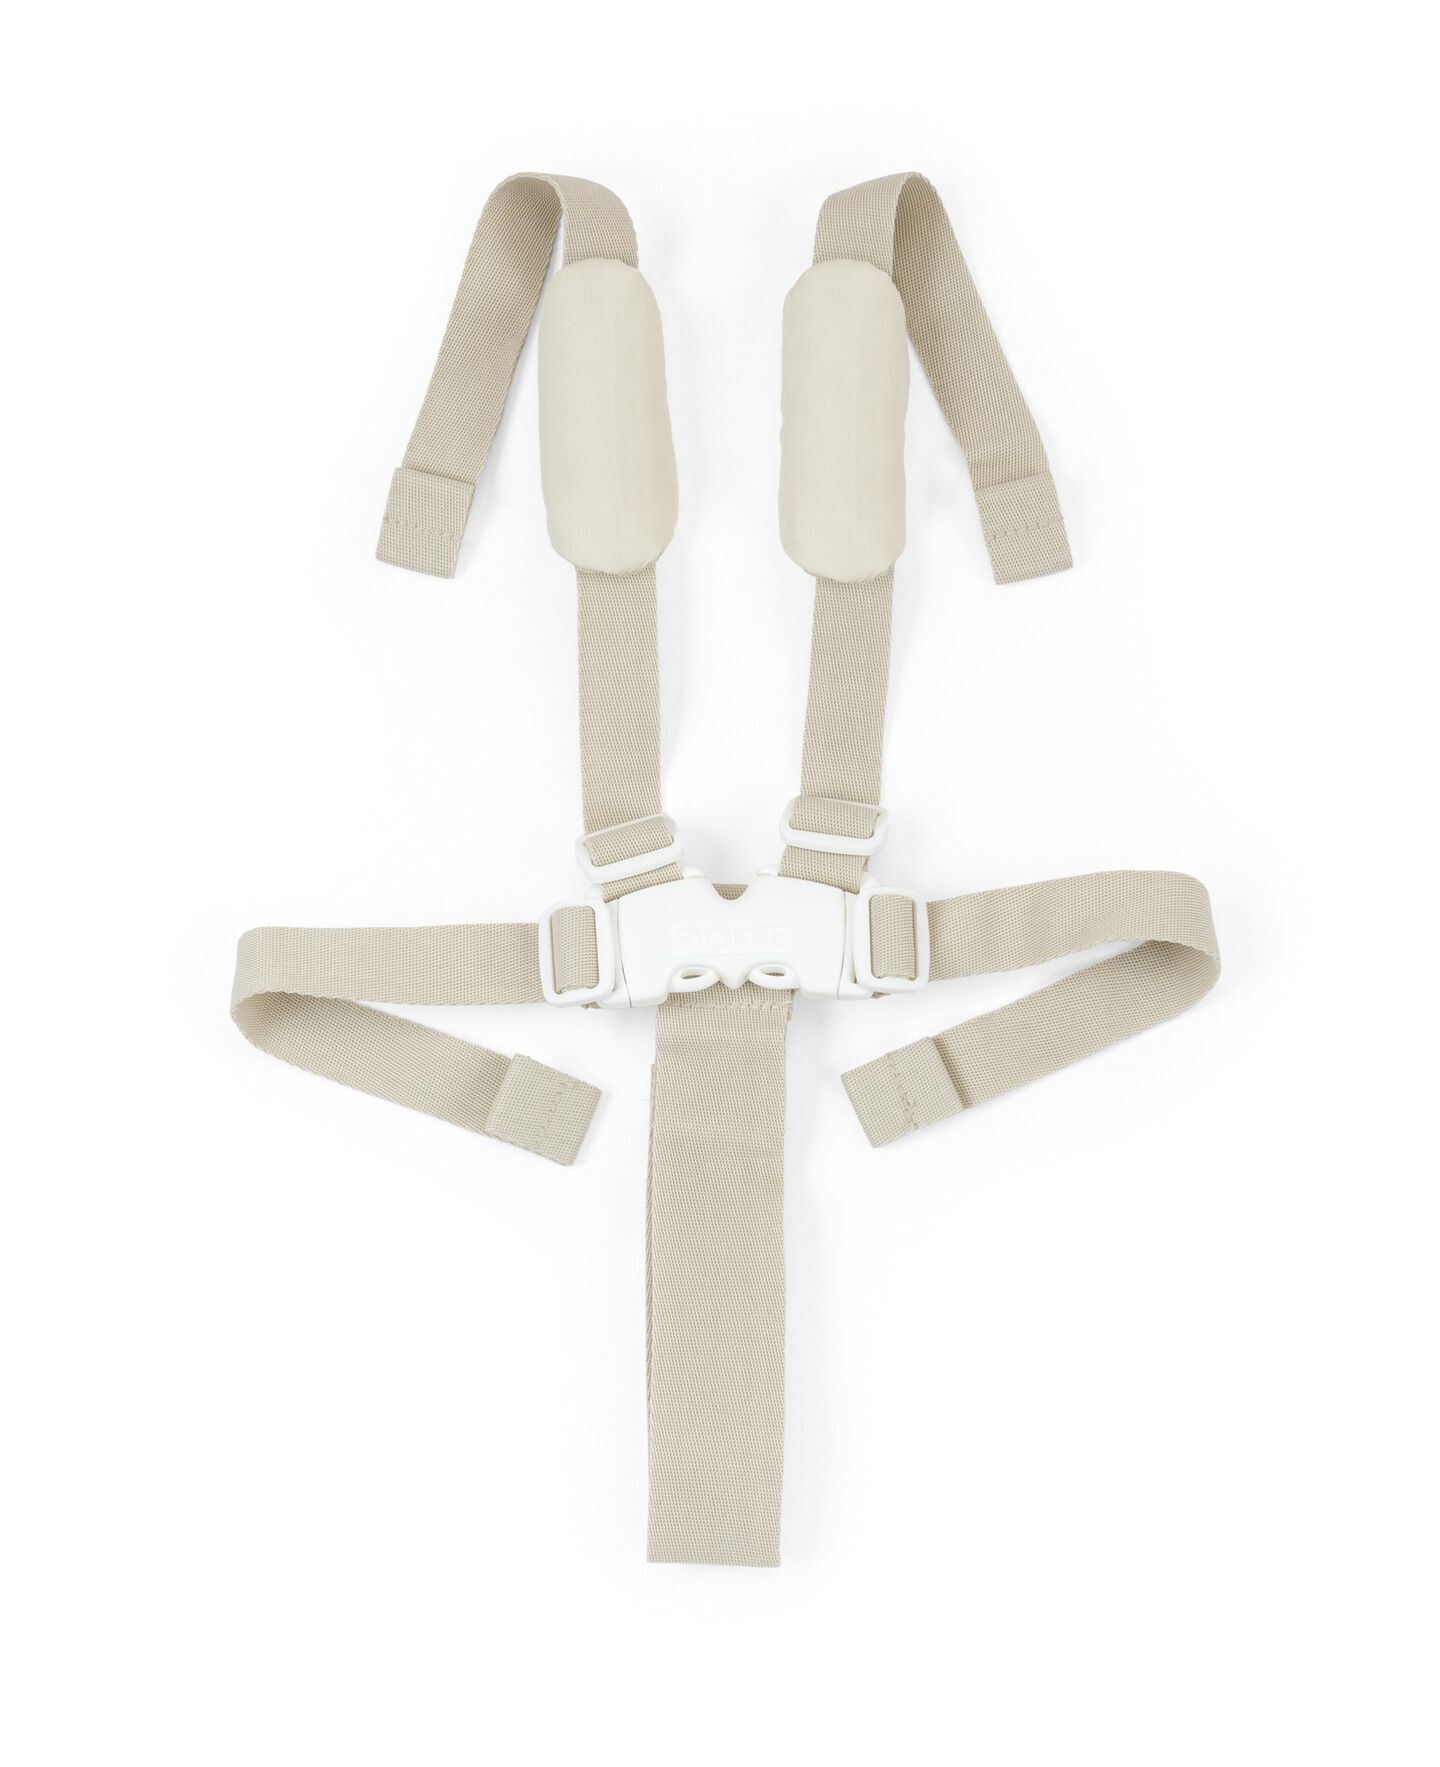 Tripp Trapp® Newborn Set Harness with shoulder pads (Sparepart).